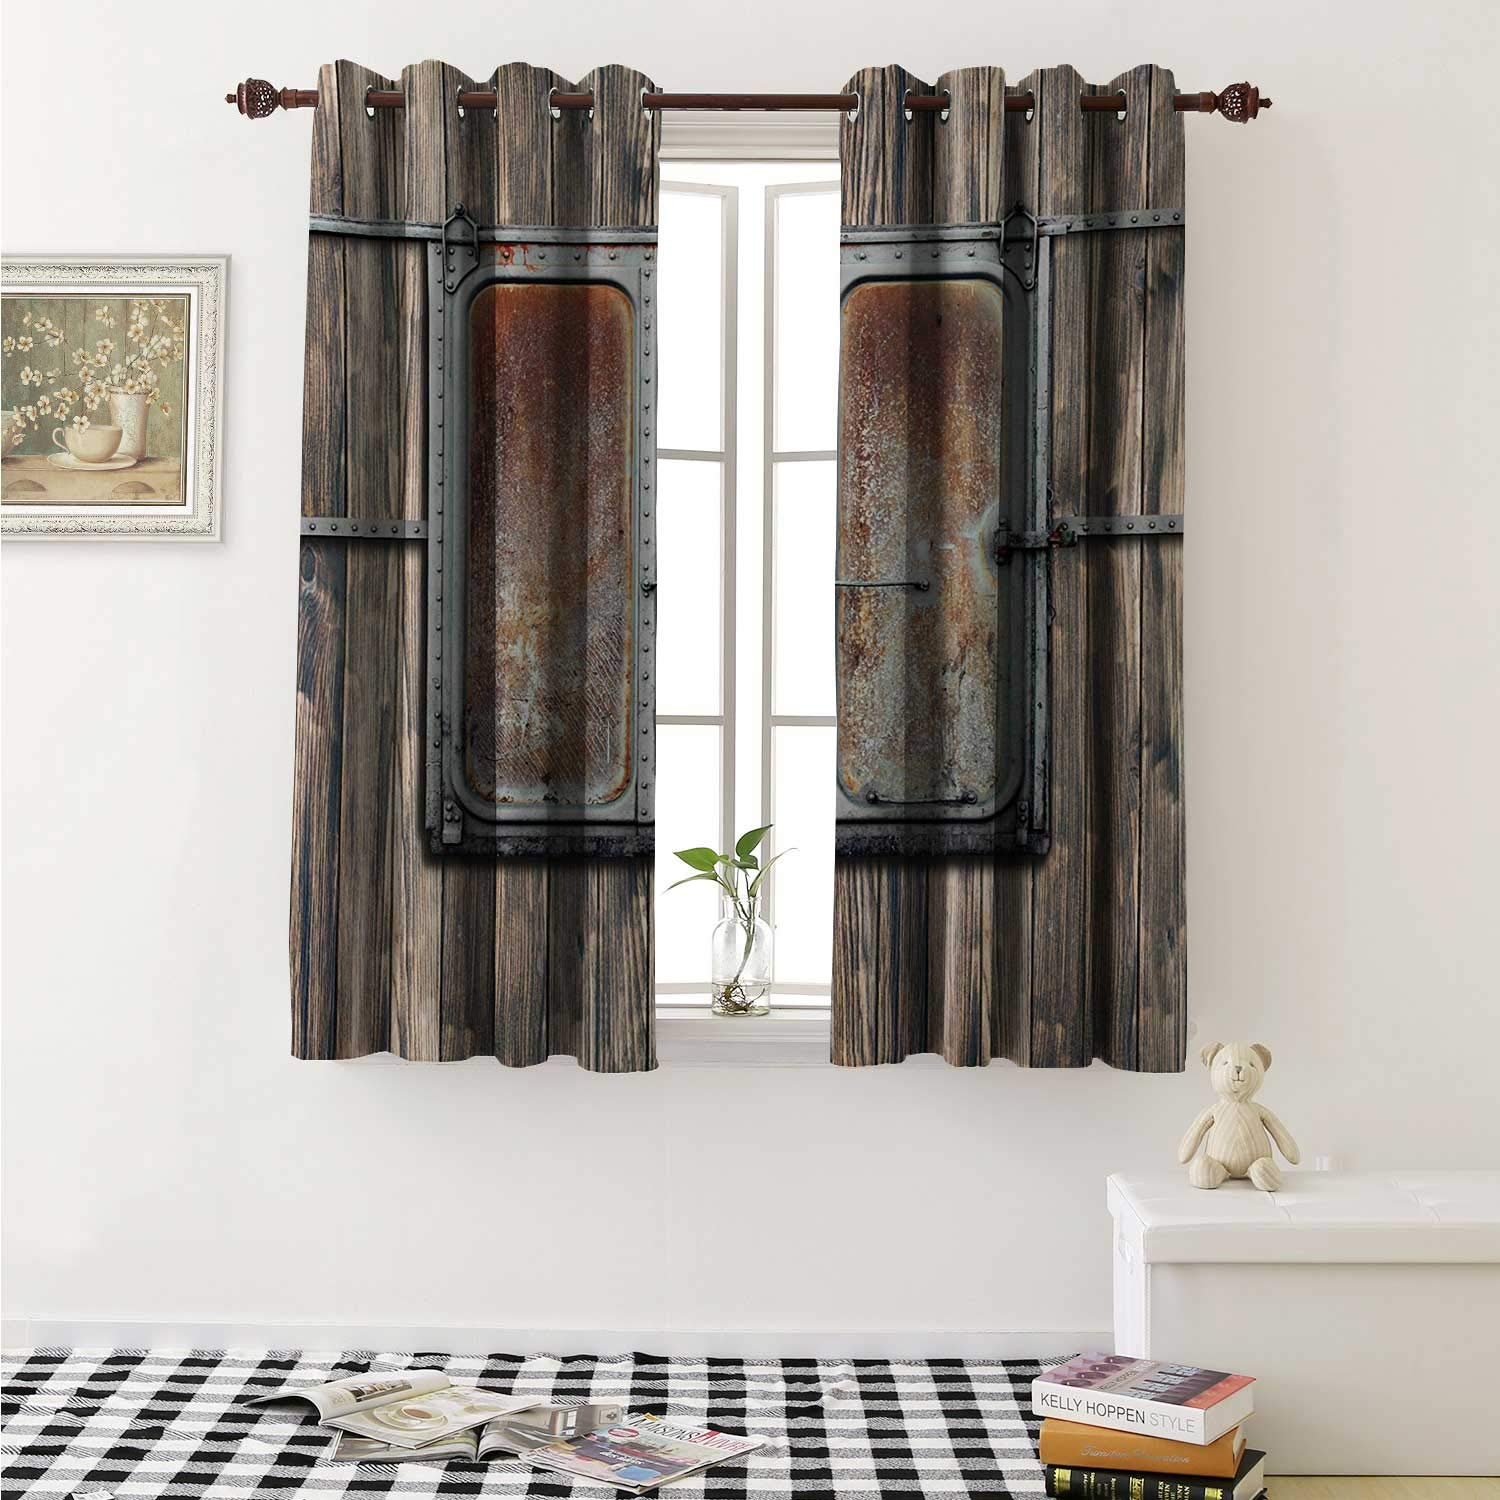 shenglv Rustic Window Curtain Fabric Wooden Tree Planks with Old and Rusty Two Angled Boat Door Image Artwork Print Curtains and Drapes for Living Room W55 x L63 Inch Brown and Grey by shenglv